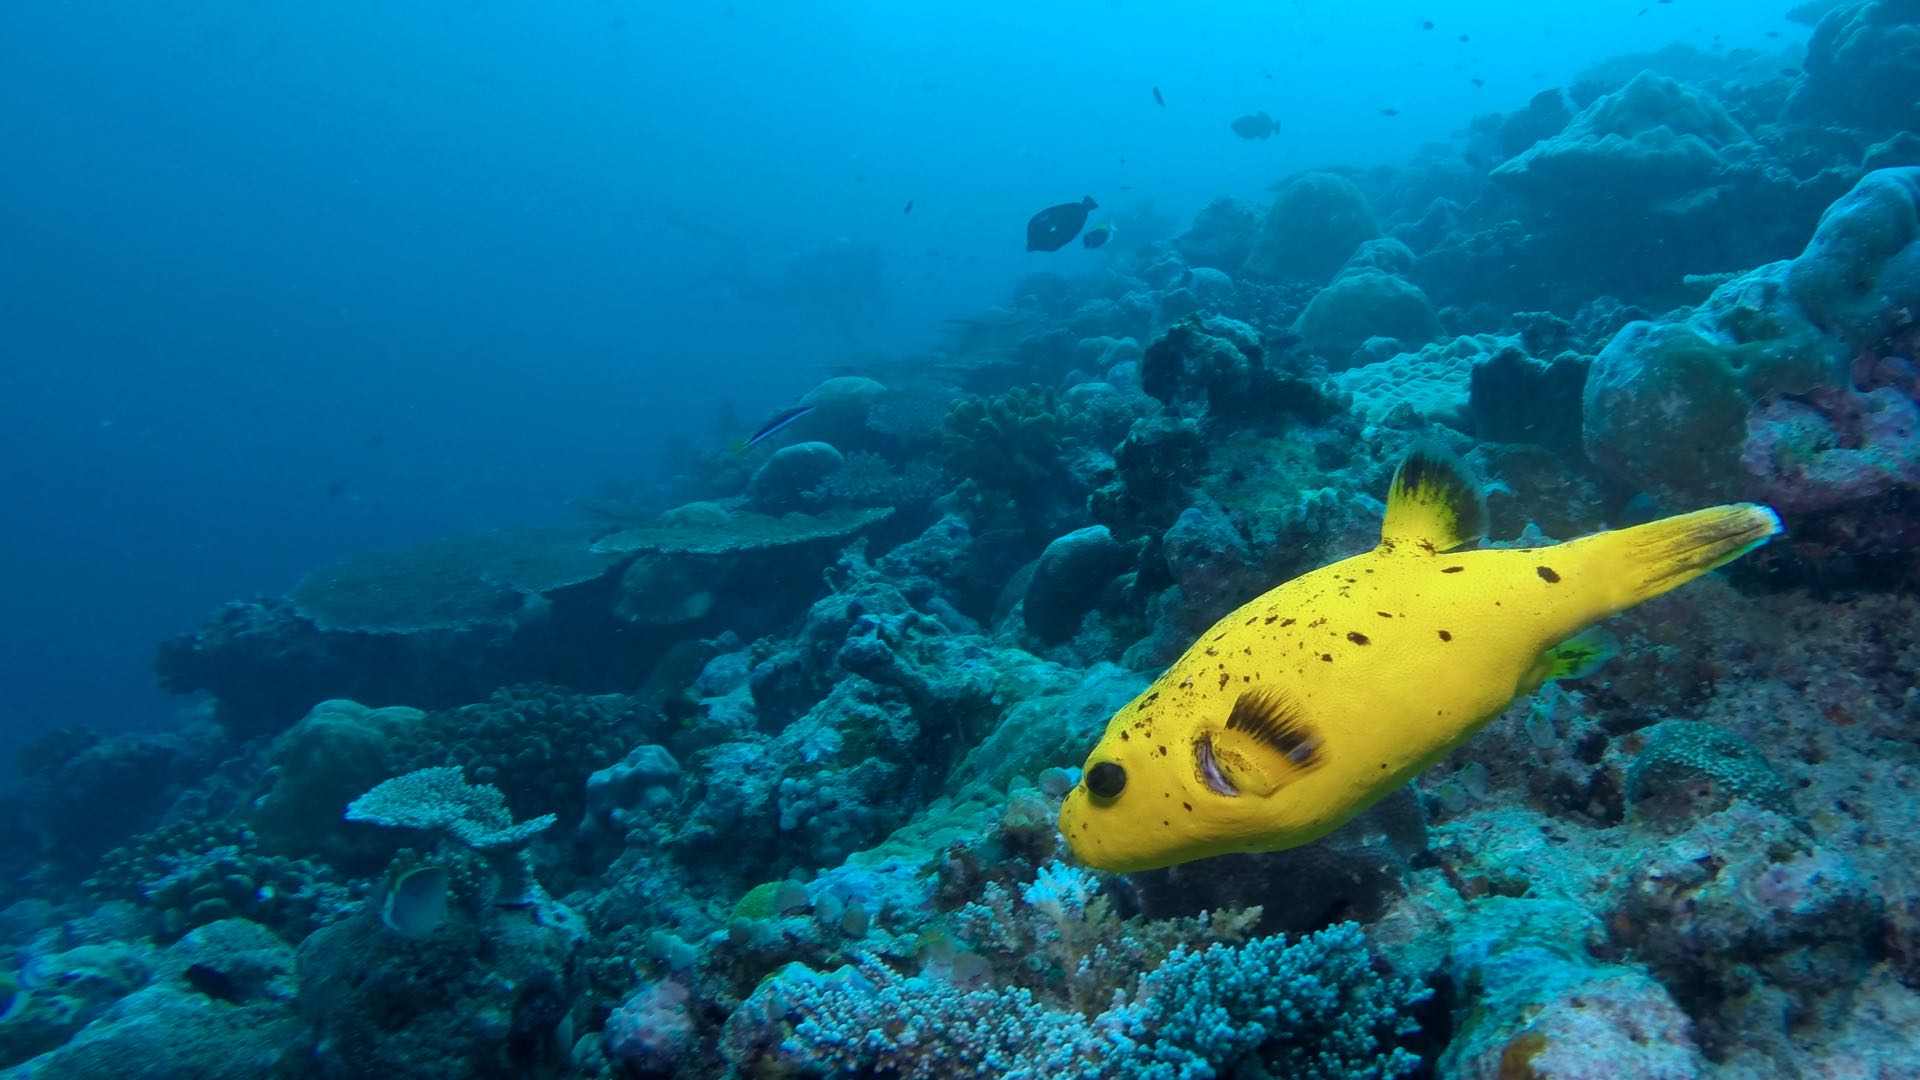 Underwater Scenery Maldives Diving Yellow Puffer